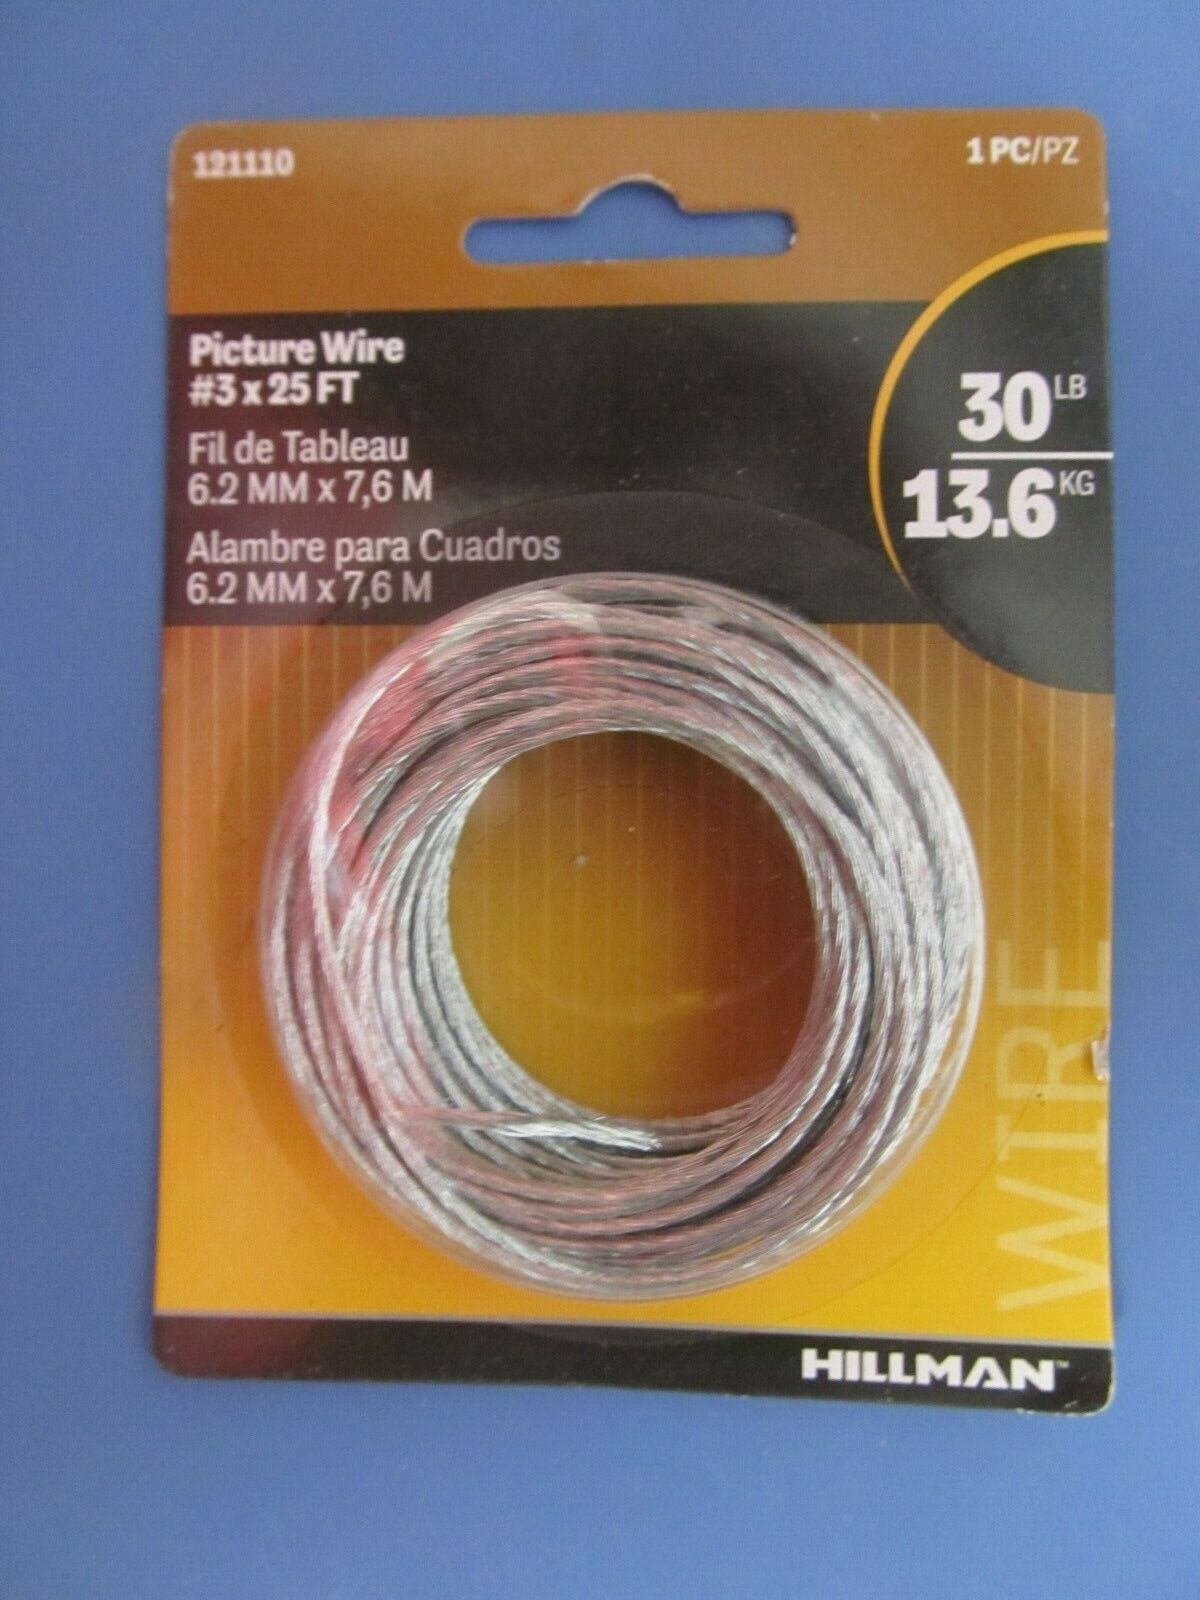 The Hillman Group 121110/Picture Hanging Wire